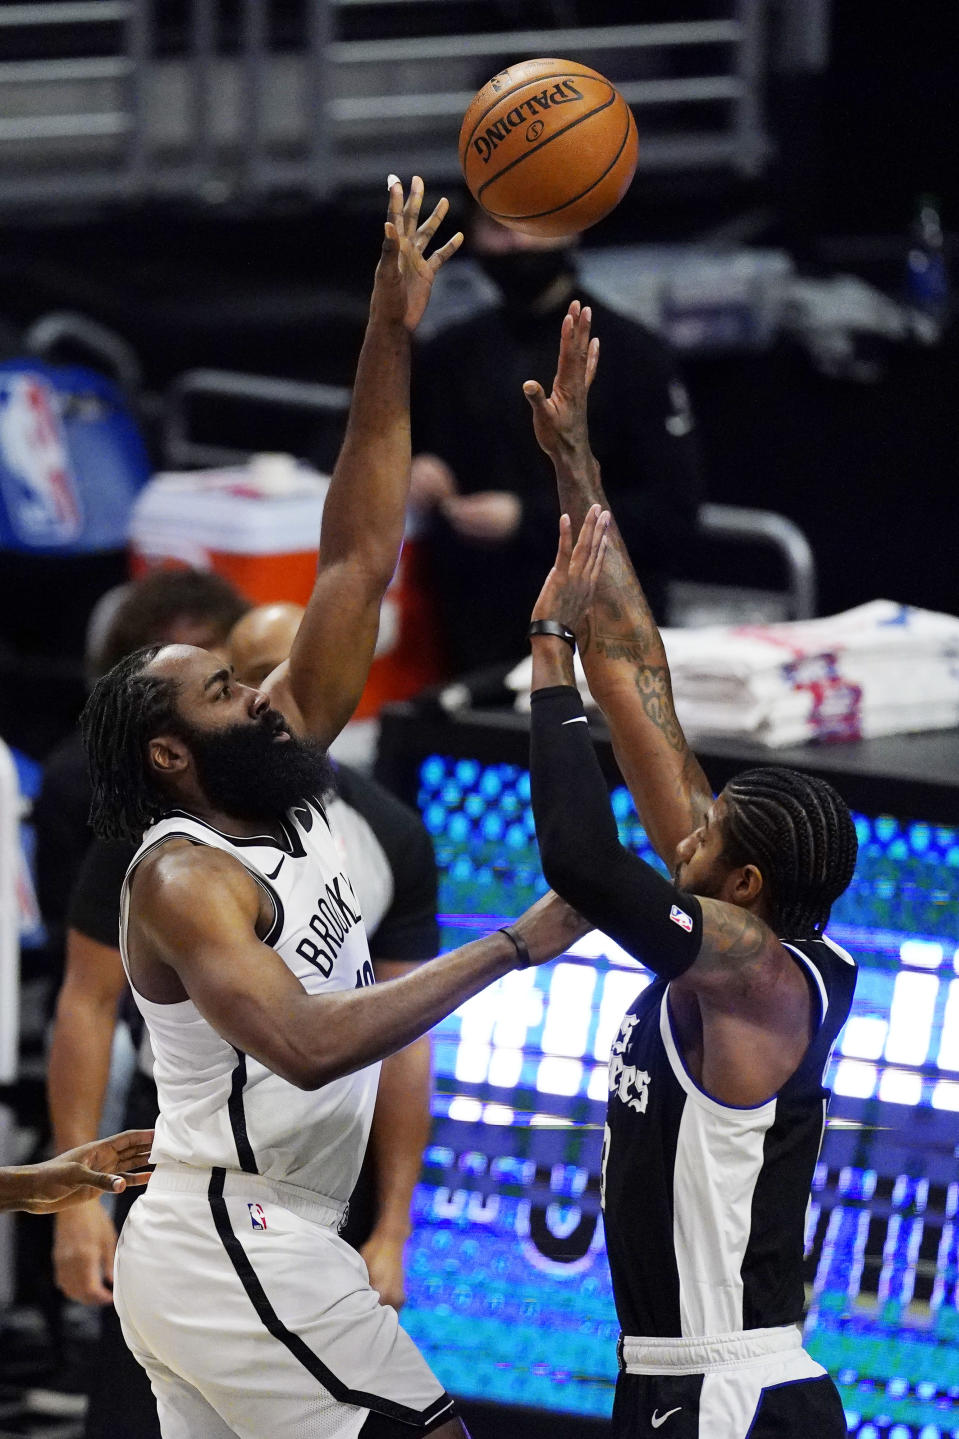 Brooklyn Nets guard James Harden, left, shoots as Los Angeles Clippers guard Paul George defends during the first half of an NBA basketball game Sunday, Feb. 21, 2021, in Los Angeles. (AP Photo/Mark J. Terrill)